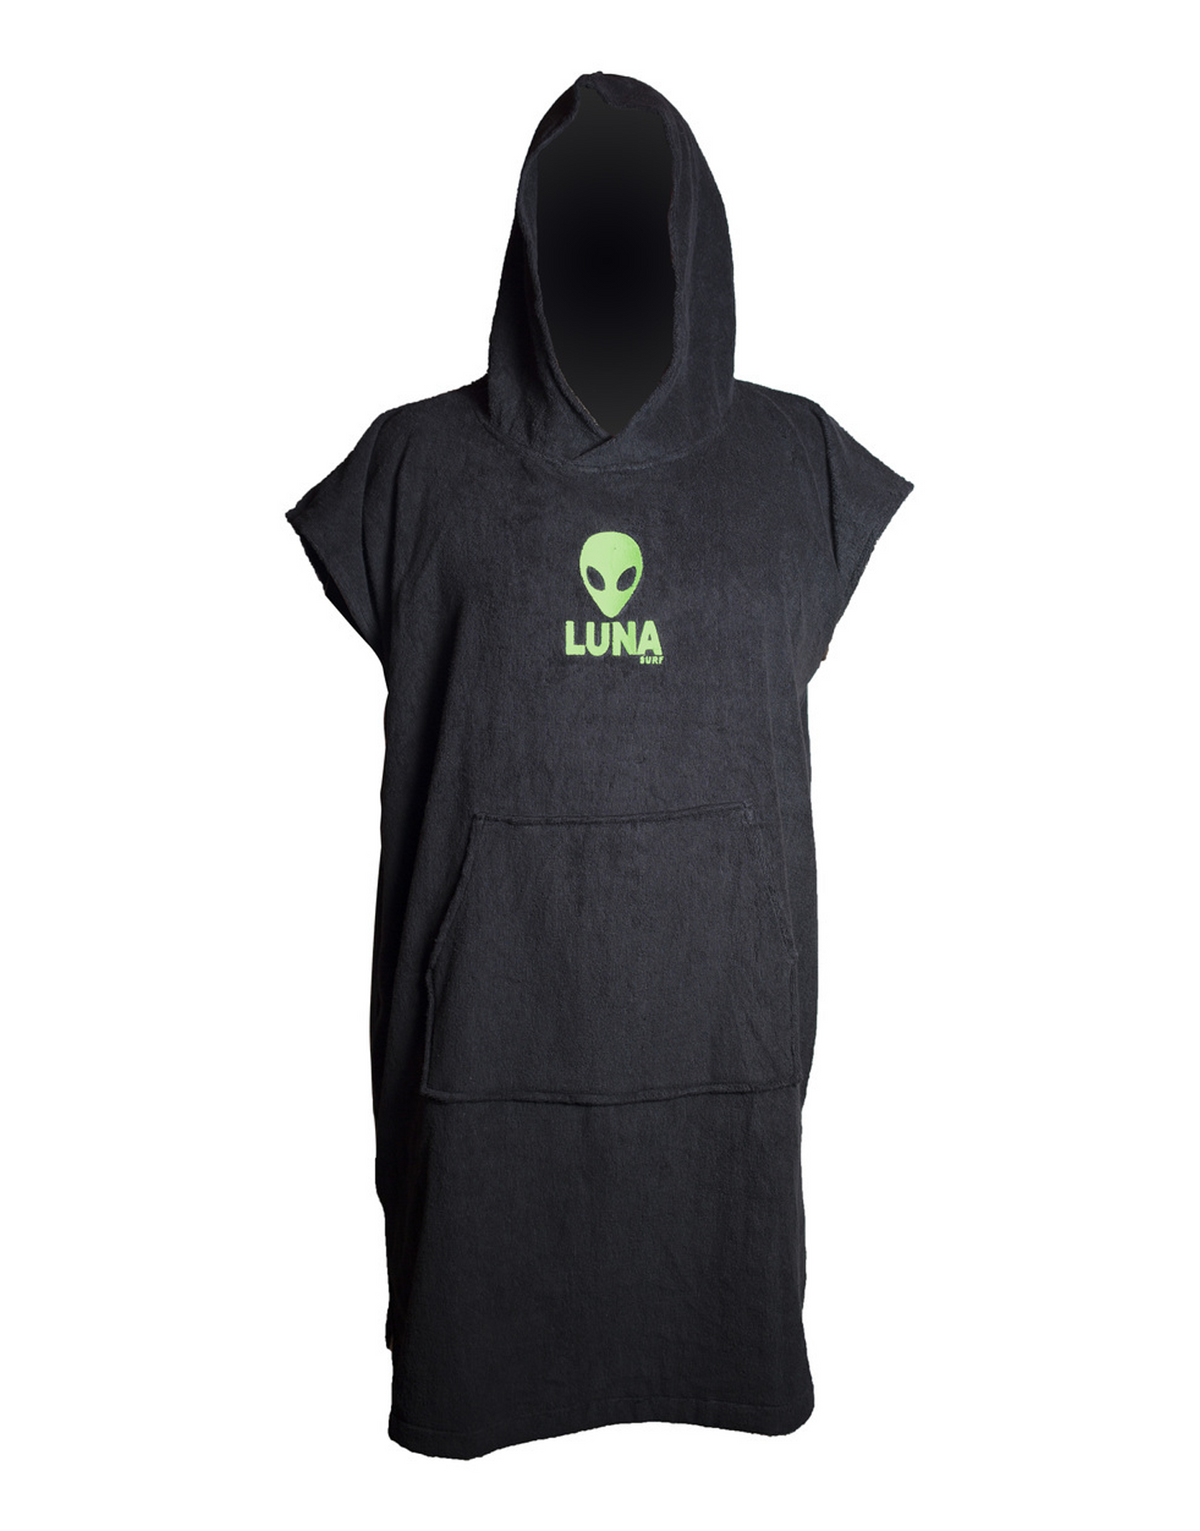 Lunasurf Change Robe Black Green Logos Youth